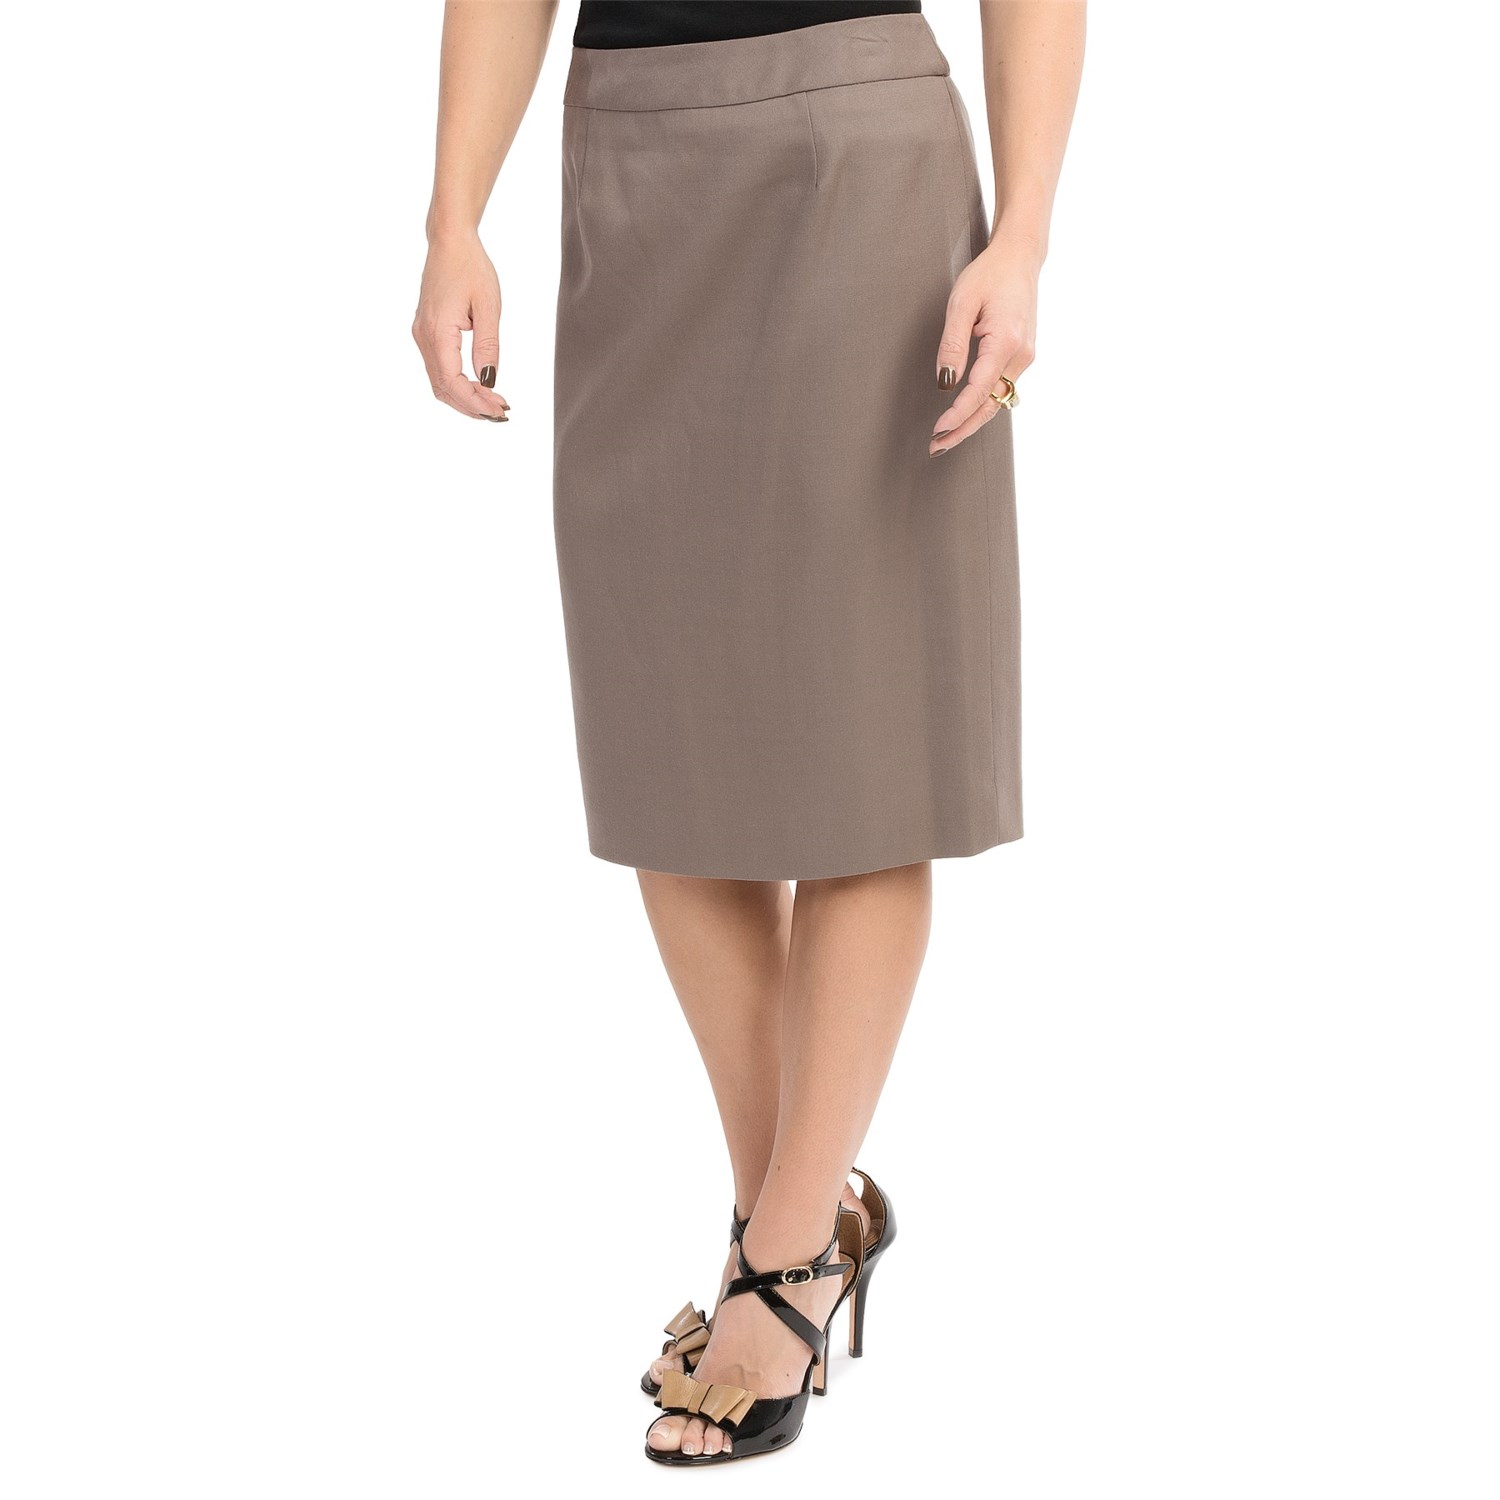 Amazing Sexy Pencil Skirt Outfits Short Pencil Skirts Are Not At